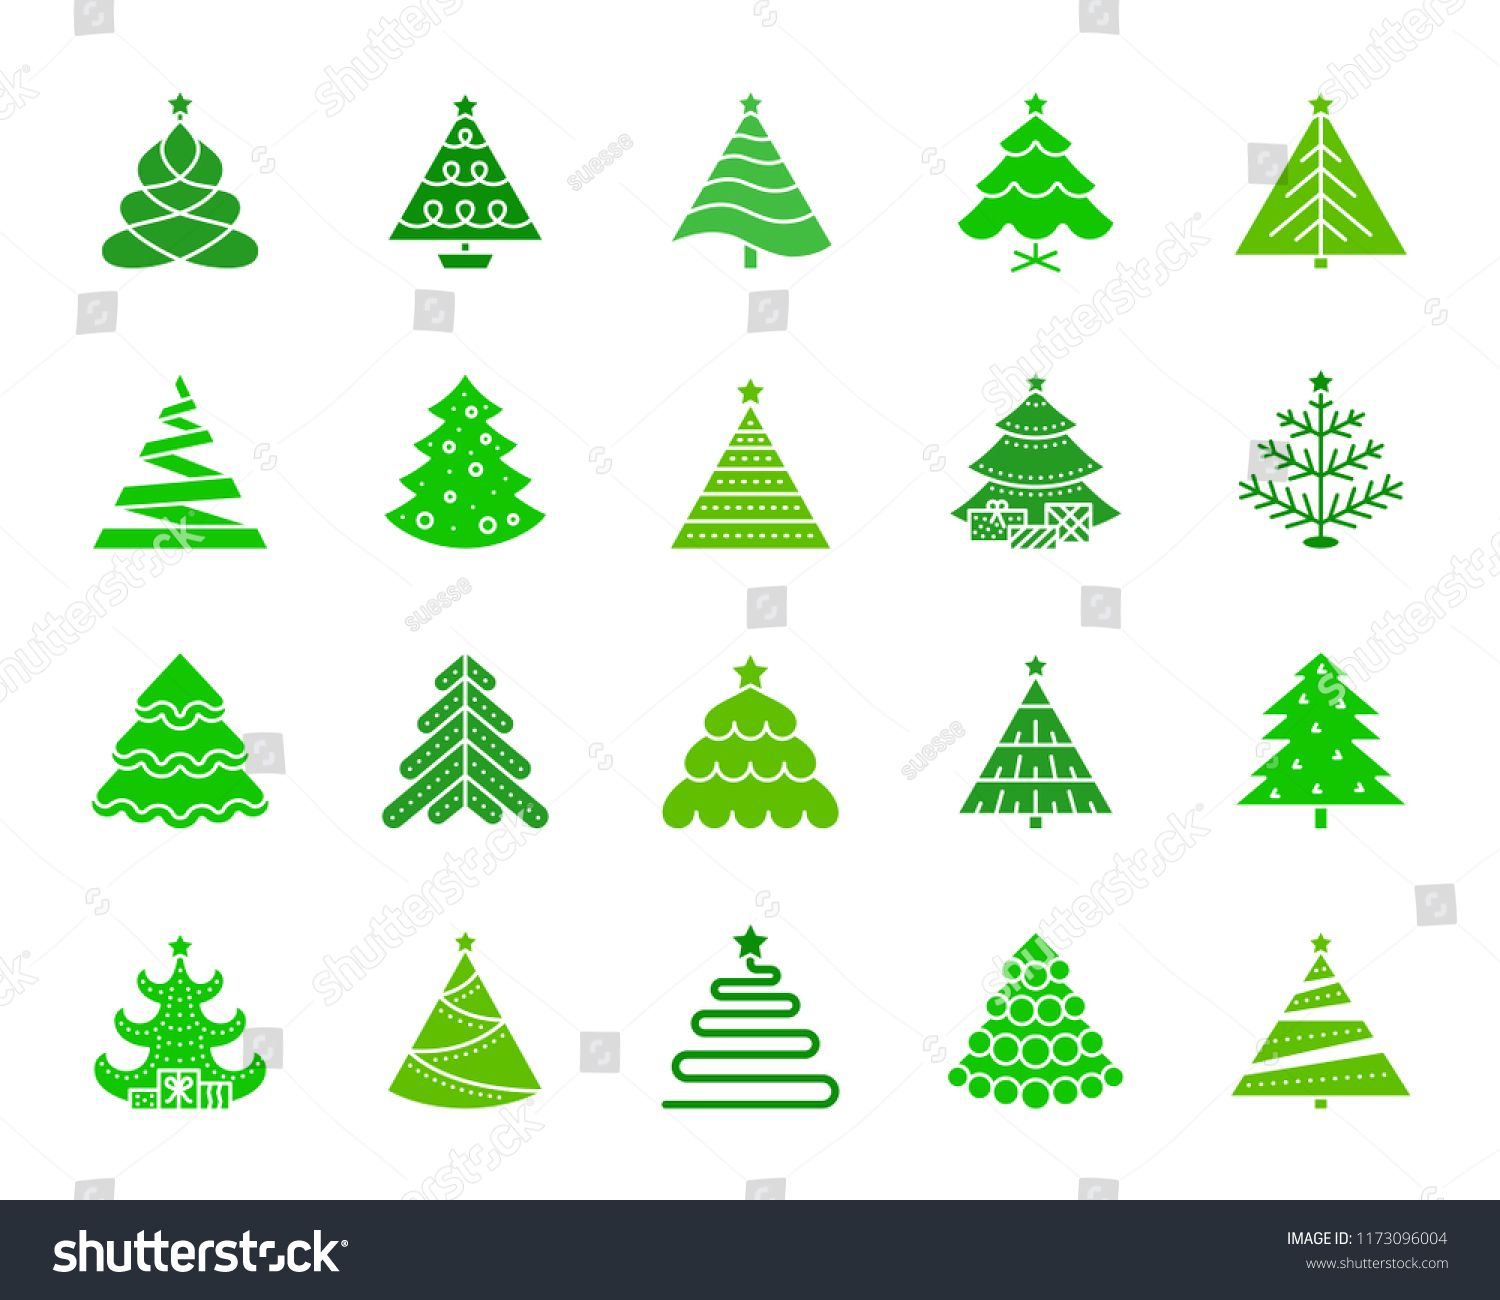 Christmas Tree Silhouette Icons Set Isolated Web Sign Kit Of Stylized Spruce Fir Farm Pictogr In 2020 Christmas Tree Silhouette Tree Silhouette Simple Christmas Tree